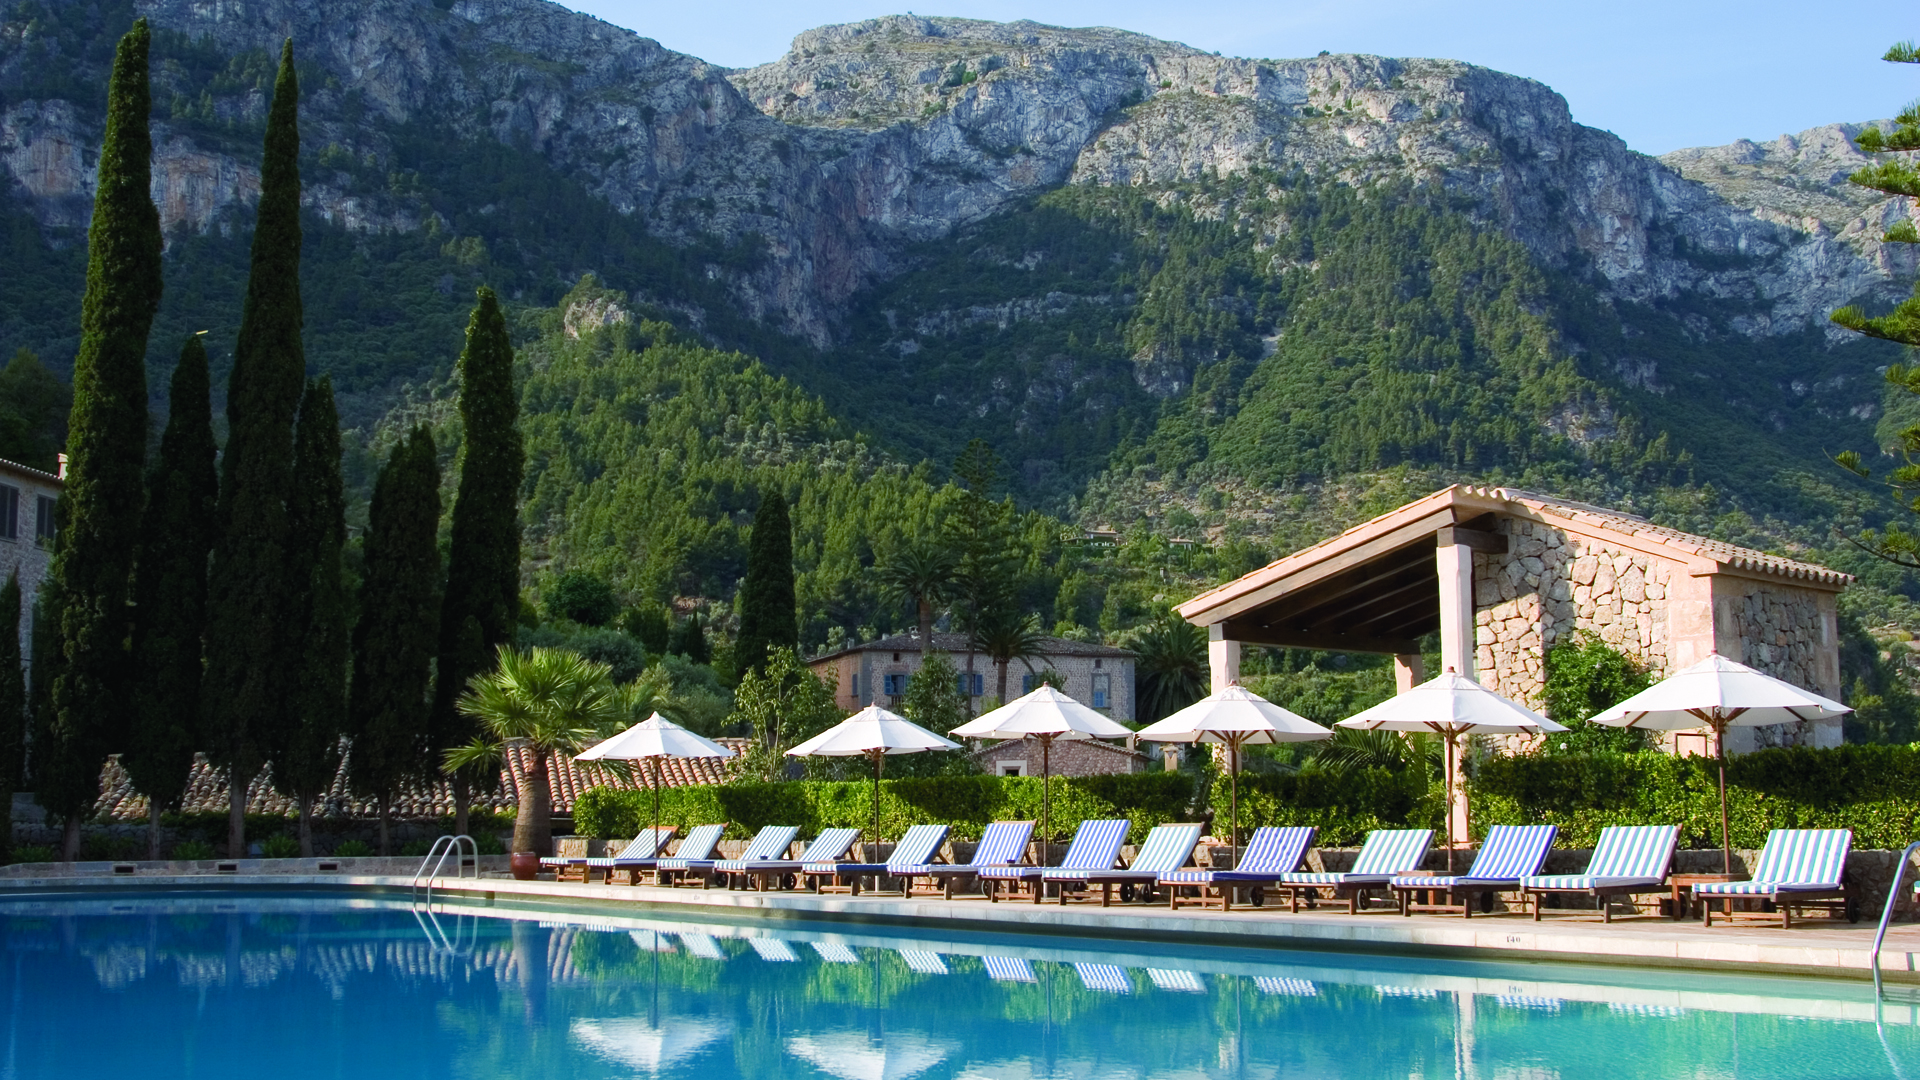 Belmond la residencia mallorca in spain from carrier for Kenay home mallorca